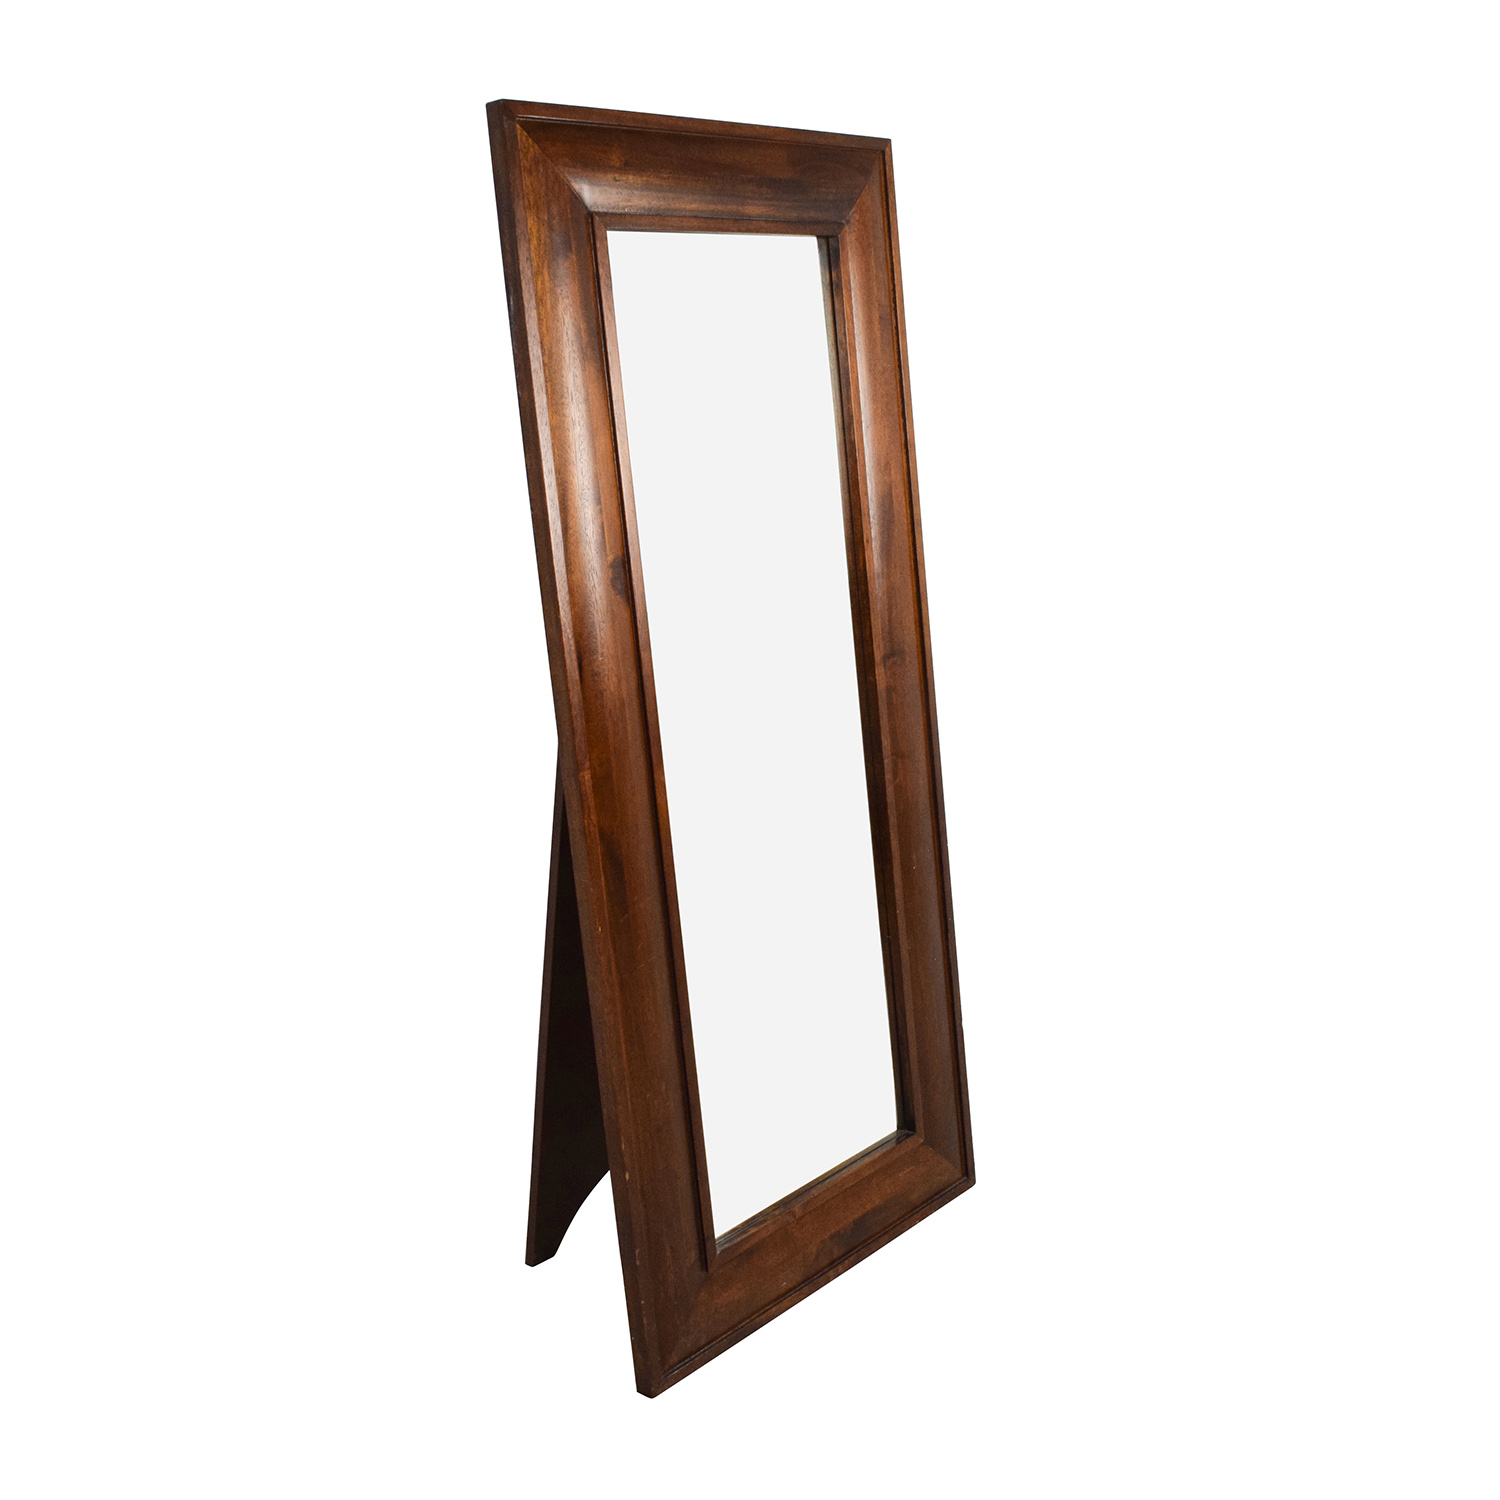 Mirrors used mirrors for sale for Large wall mirror wood frame